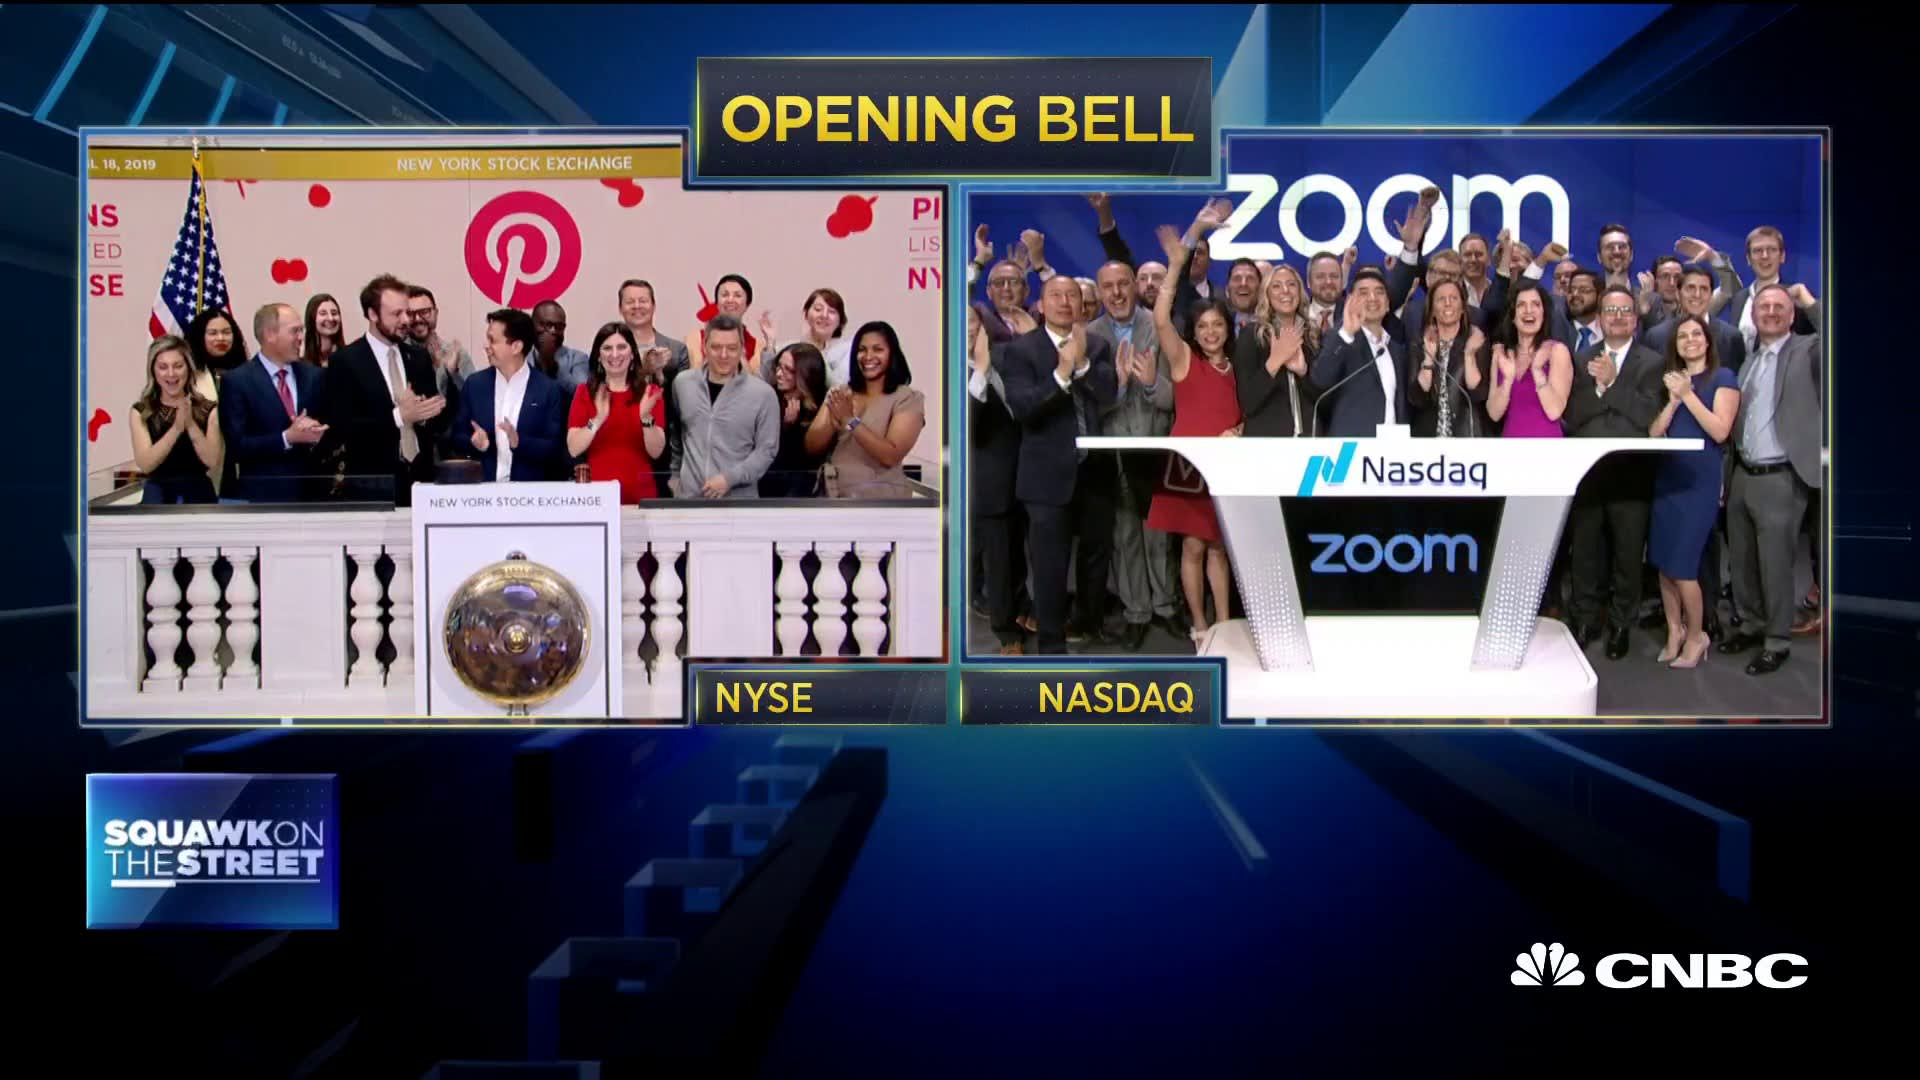 Opening Bell, April 18, 2019